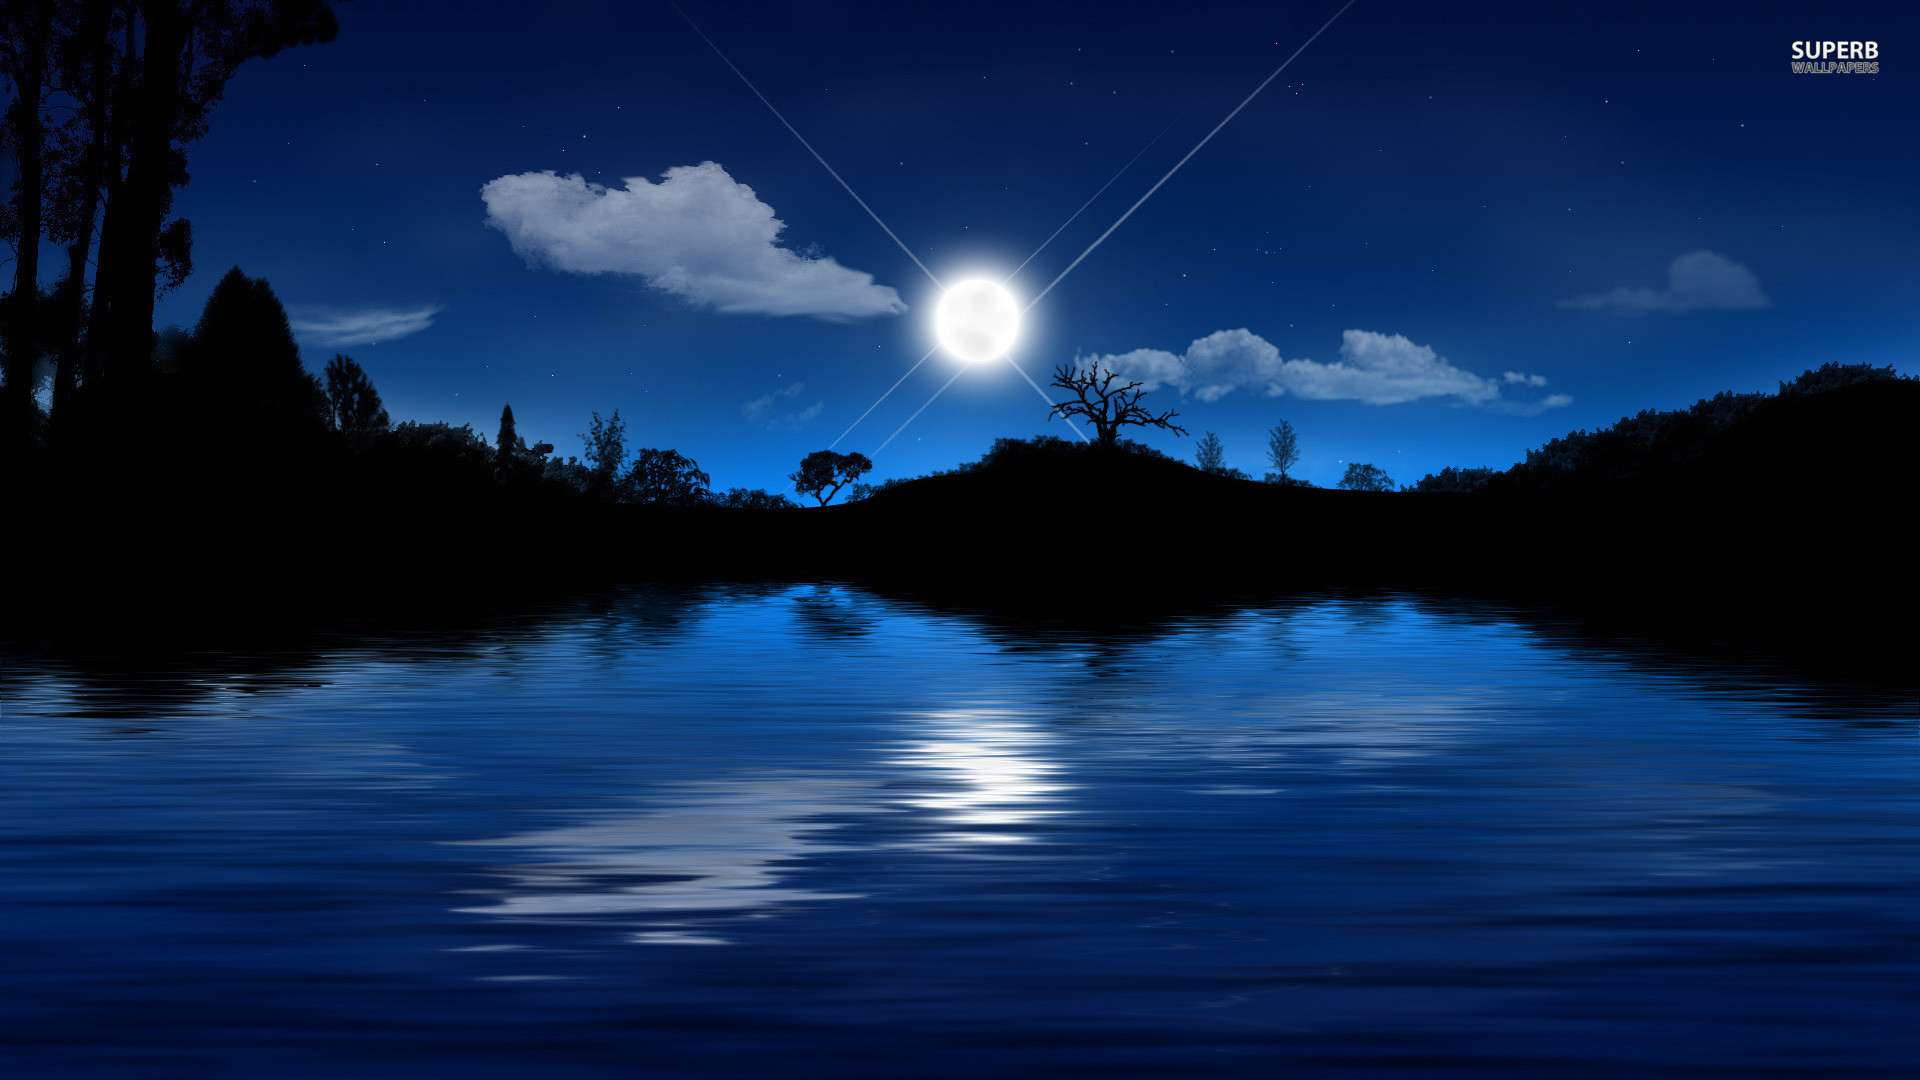 1920x1080 Clear Moonlit Lake HD Desktop Wallpaper, Background Image